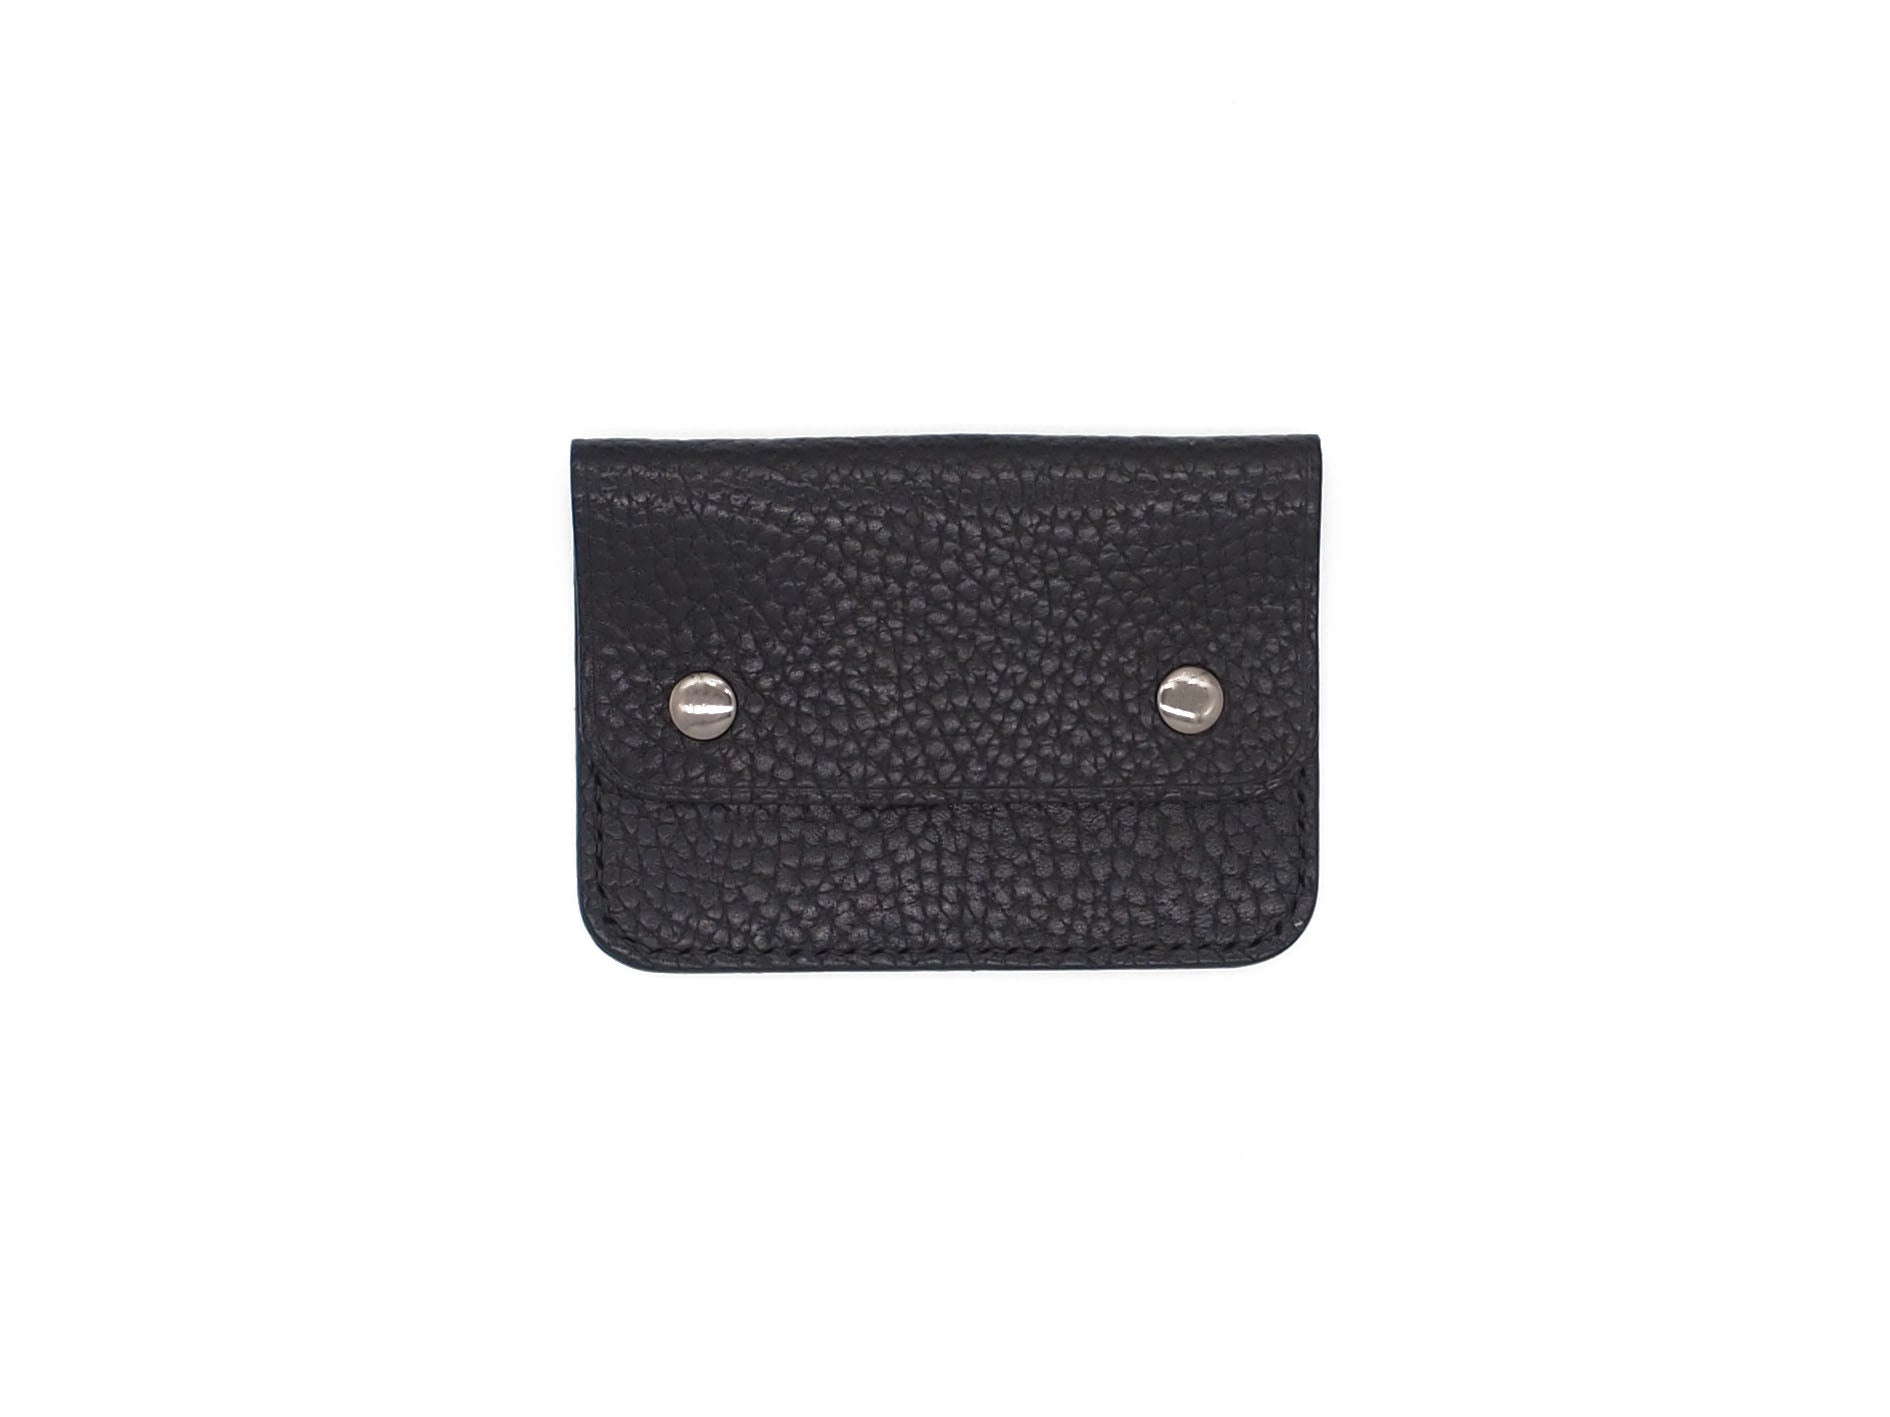 Utility Pocket - Snap Pouch Wallet In Pebbled Black